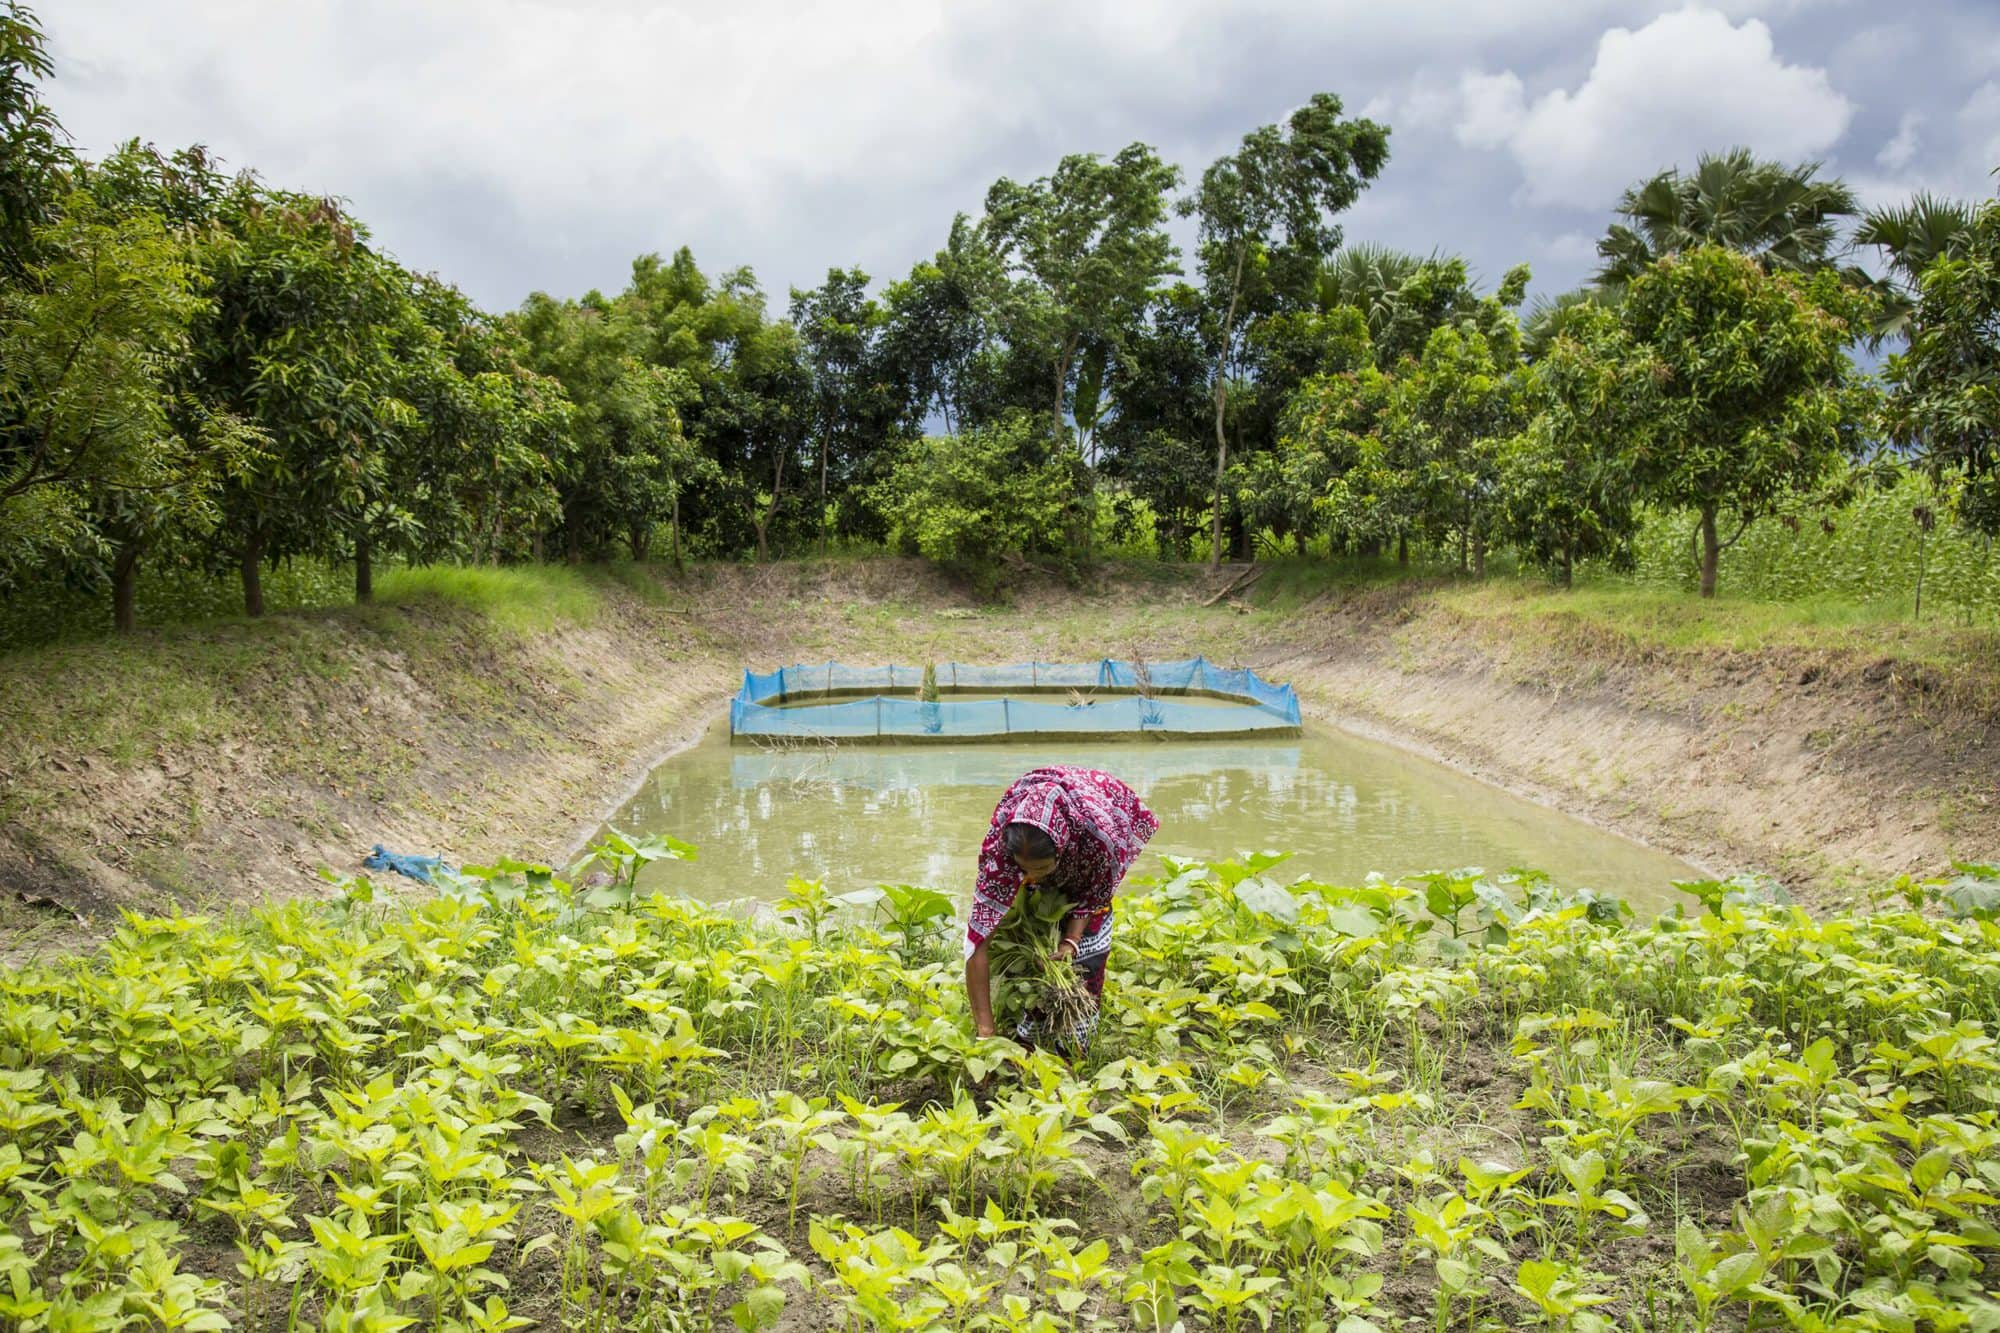 Jayanti Rai, a woman fish farmer, taking care of her vegetables garden beside the pond dike for nutrition sensitive aquaculture in Bangladesh. / Noor Alam, WorldFish